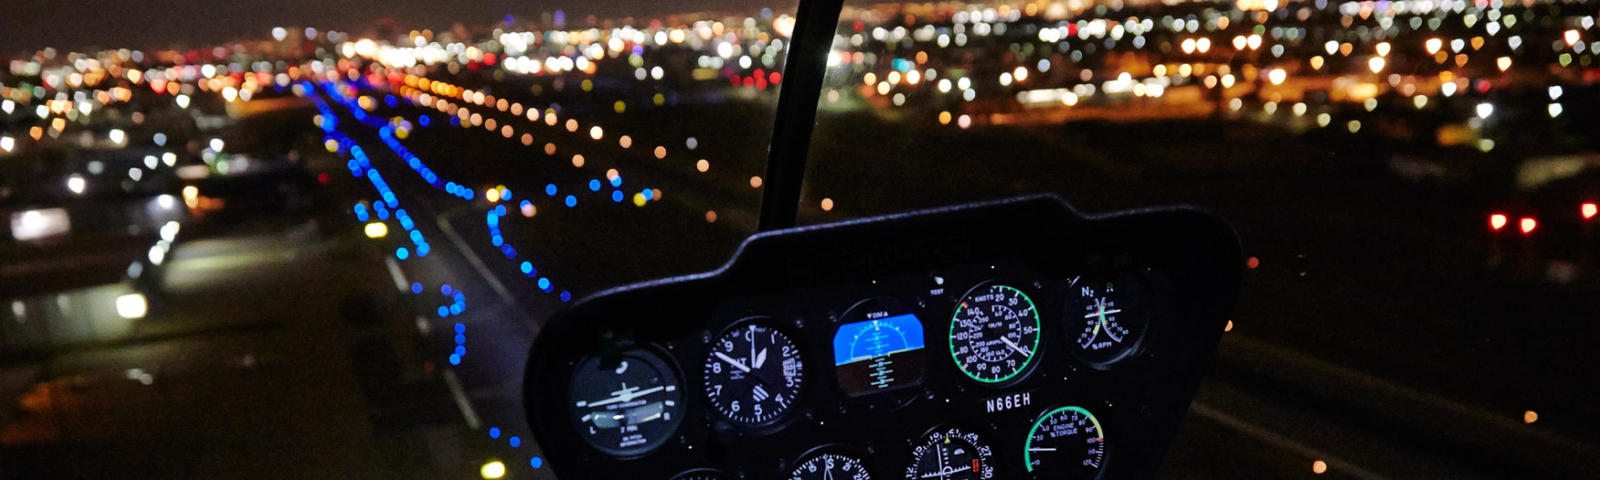 Helicopter Tour at Night